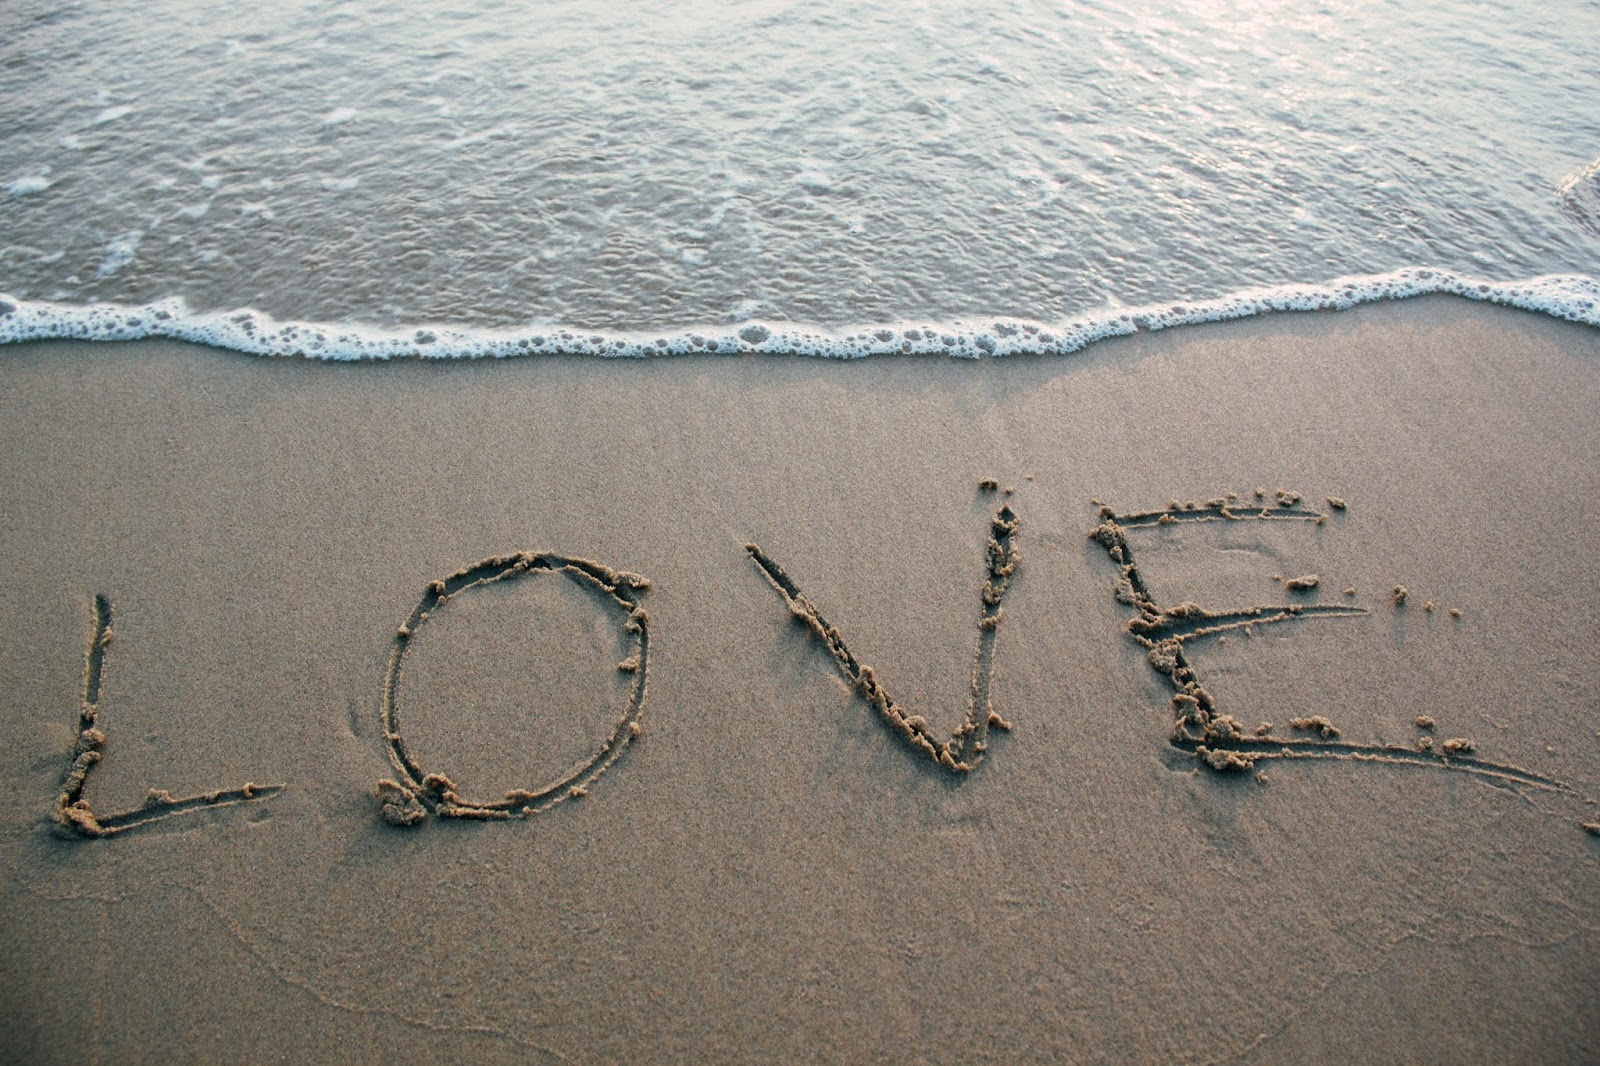 Brown Sand Love Text on Seashore, love images